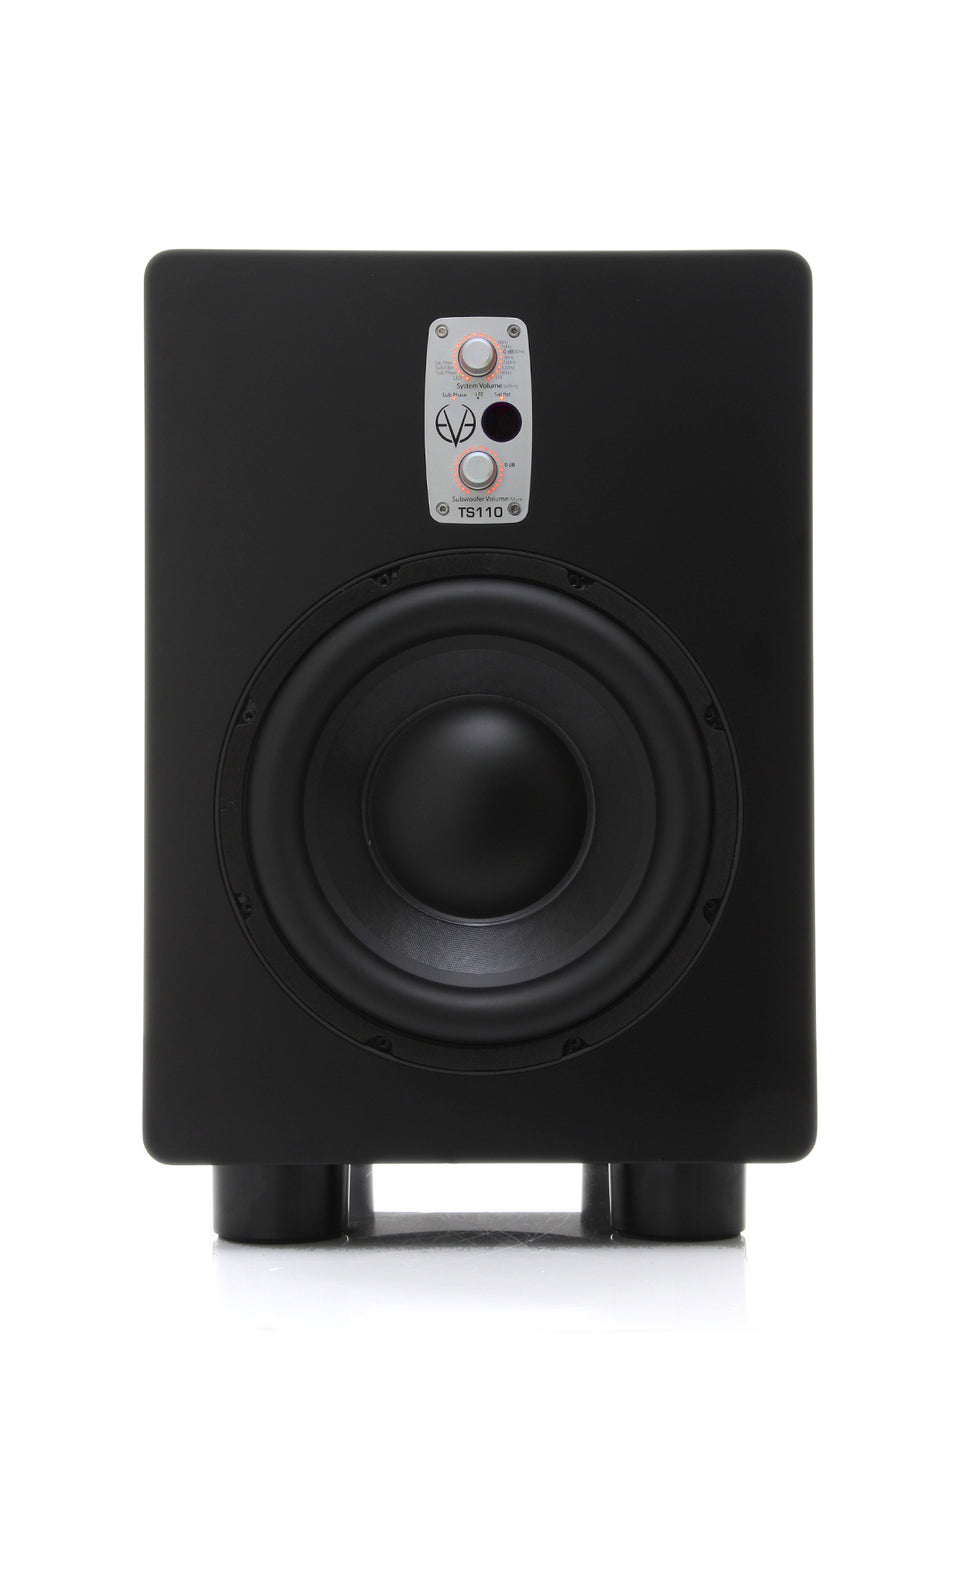 "Eve Audio TS110 ThunderStorm 10"" Active Subwoofer"